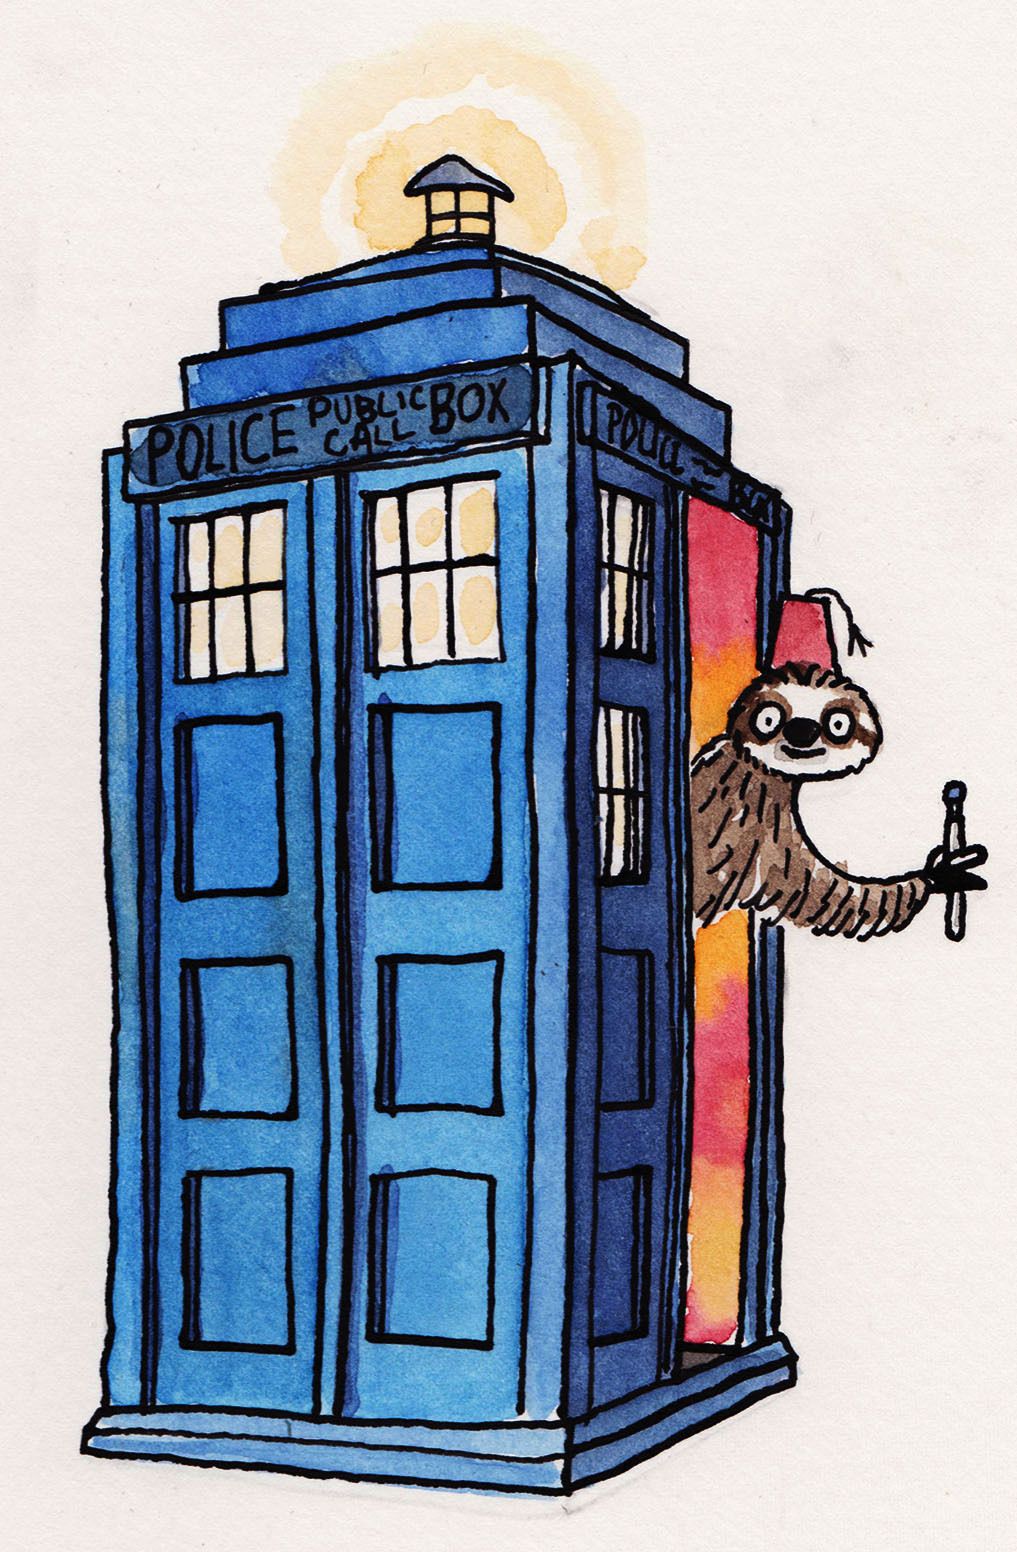 Sloth + Doctor Who = Wheelhouse